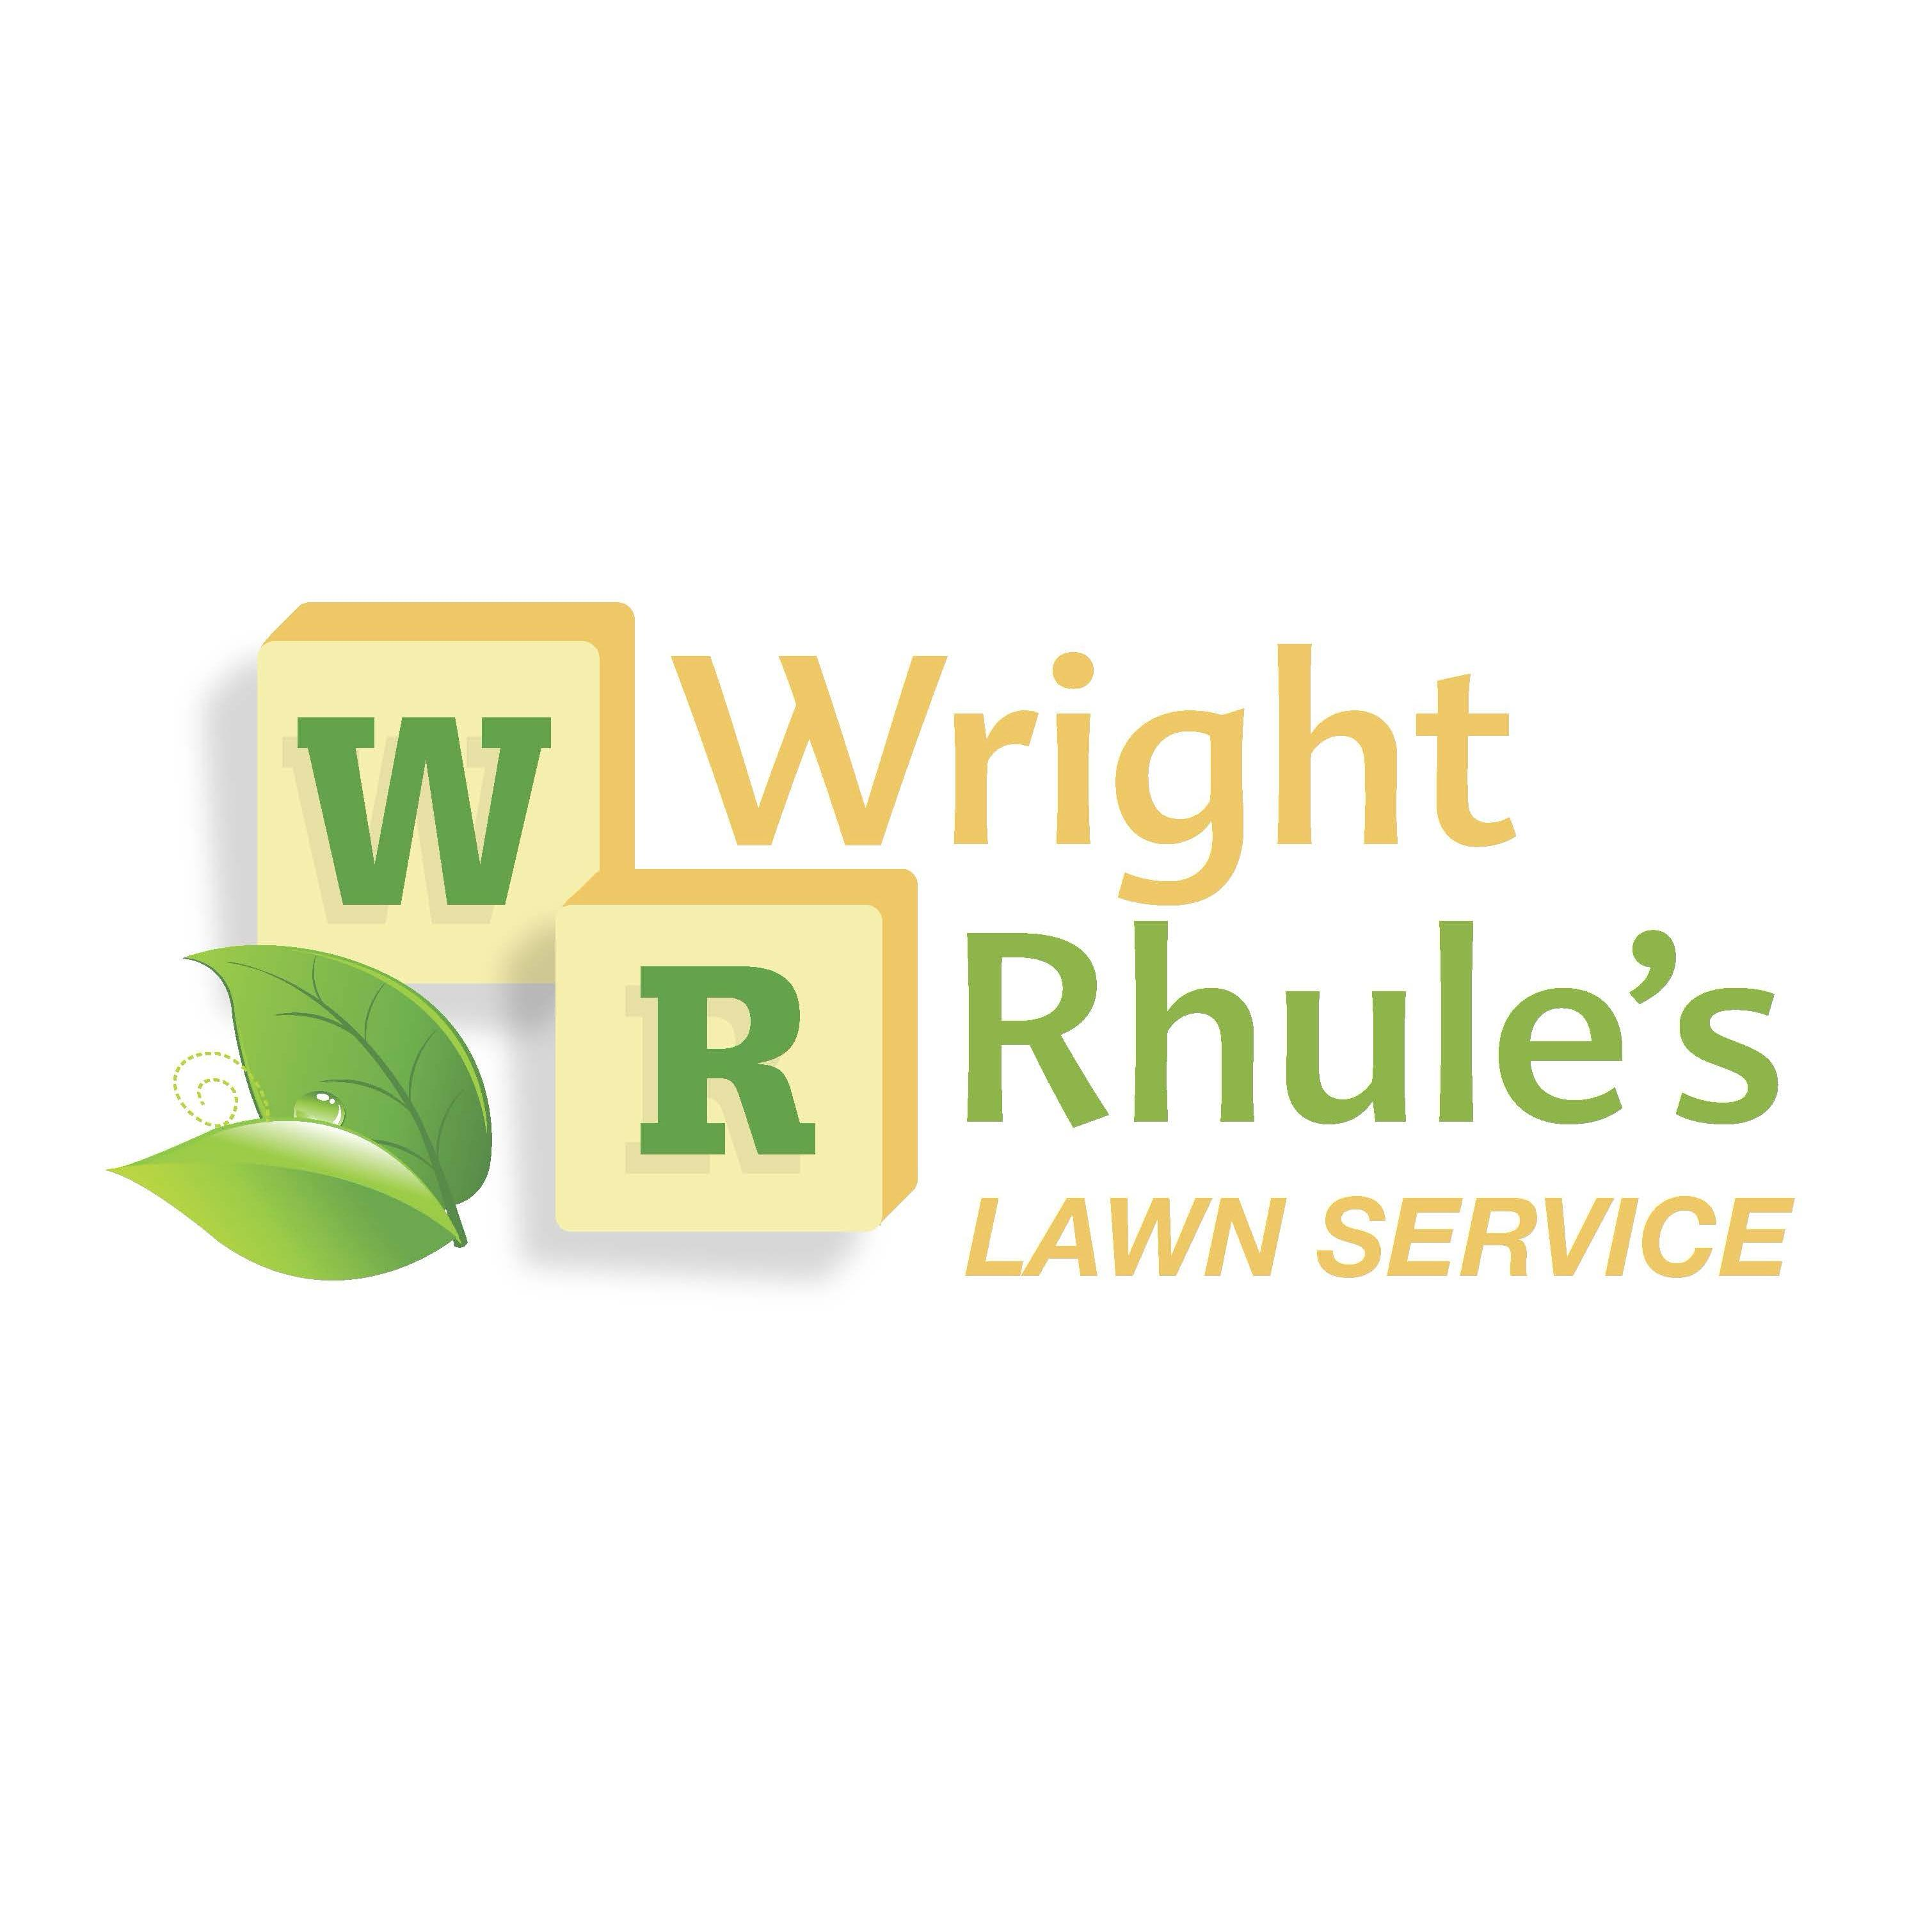 Wrightrhule's Lawn Service